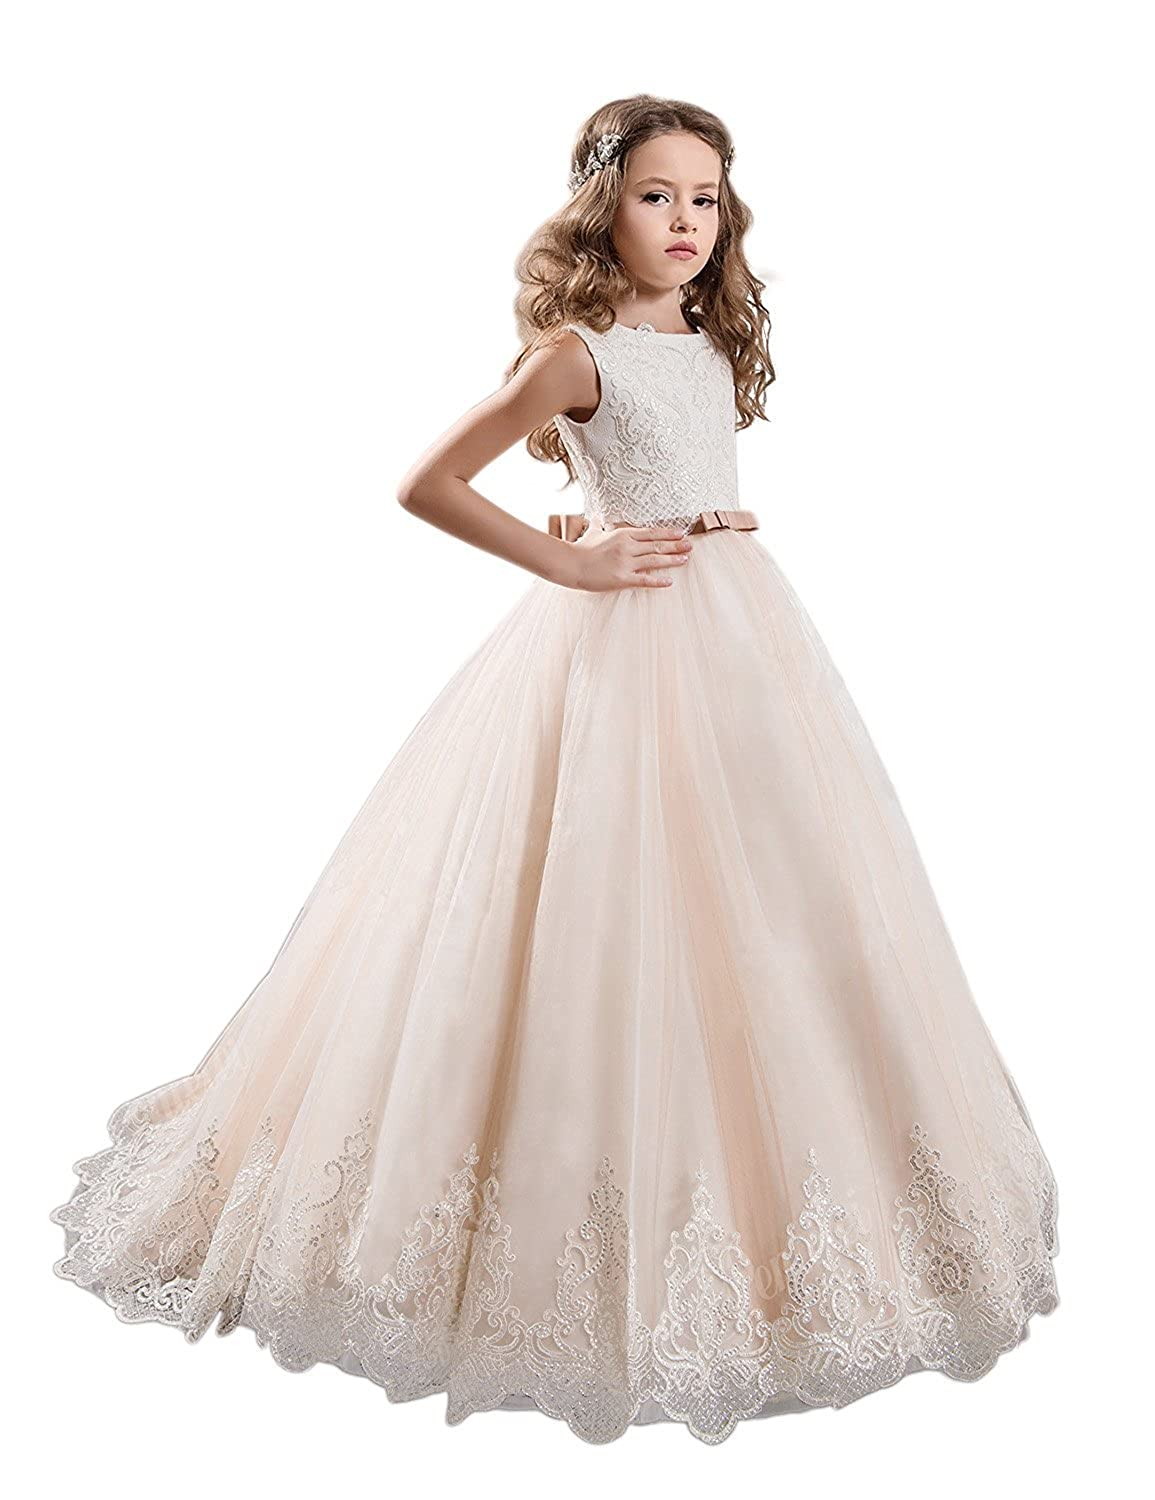 be2527995ff70 Amazon.com  KissAngel Ivory Long Lace Flower Girl Dresses Champagne Less Party  Dress  Clothing